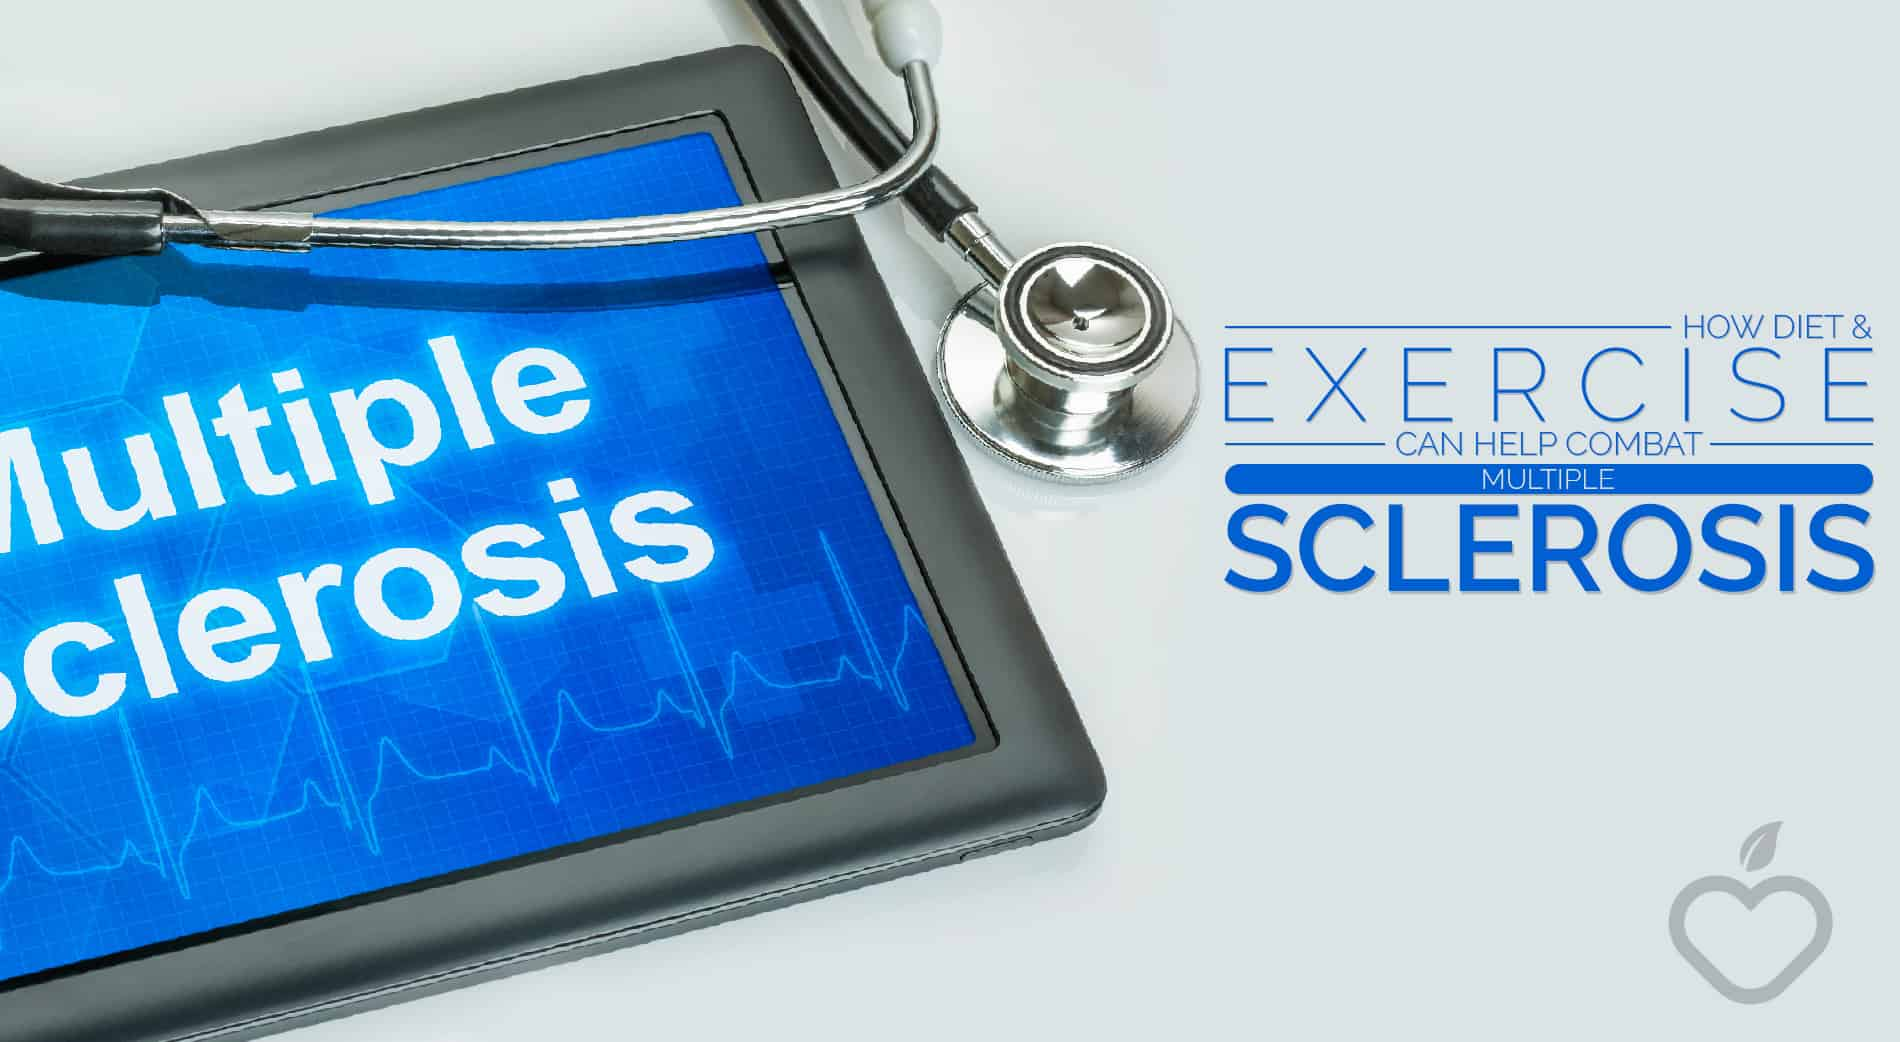 Multiple Sclerosis Image Design 1 - How Diet And Exercise Can Help Combat Multiple Sclerosis